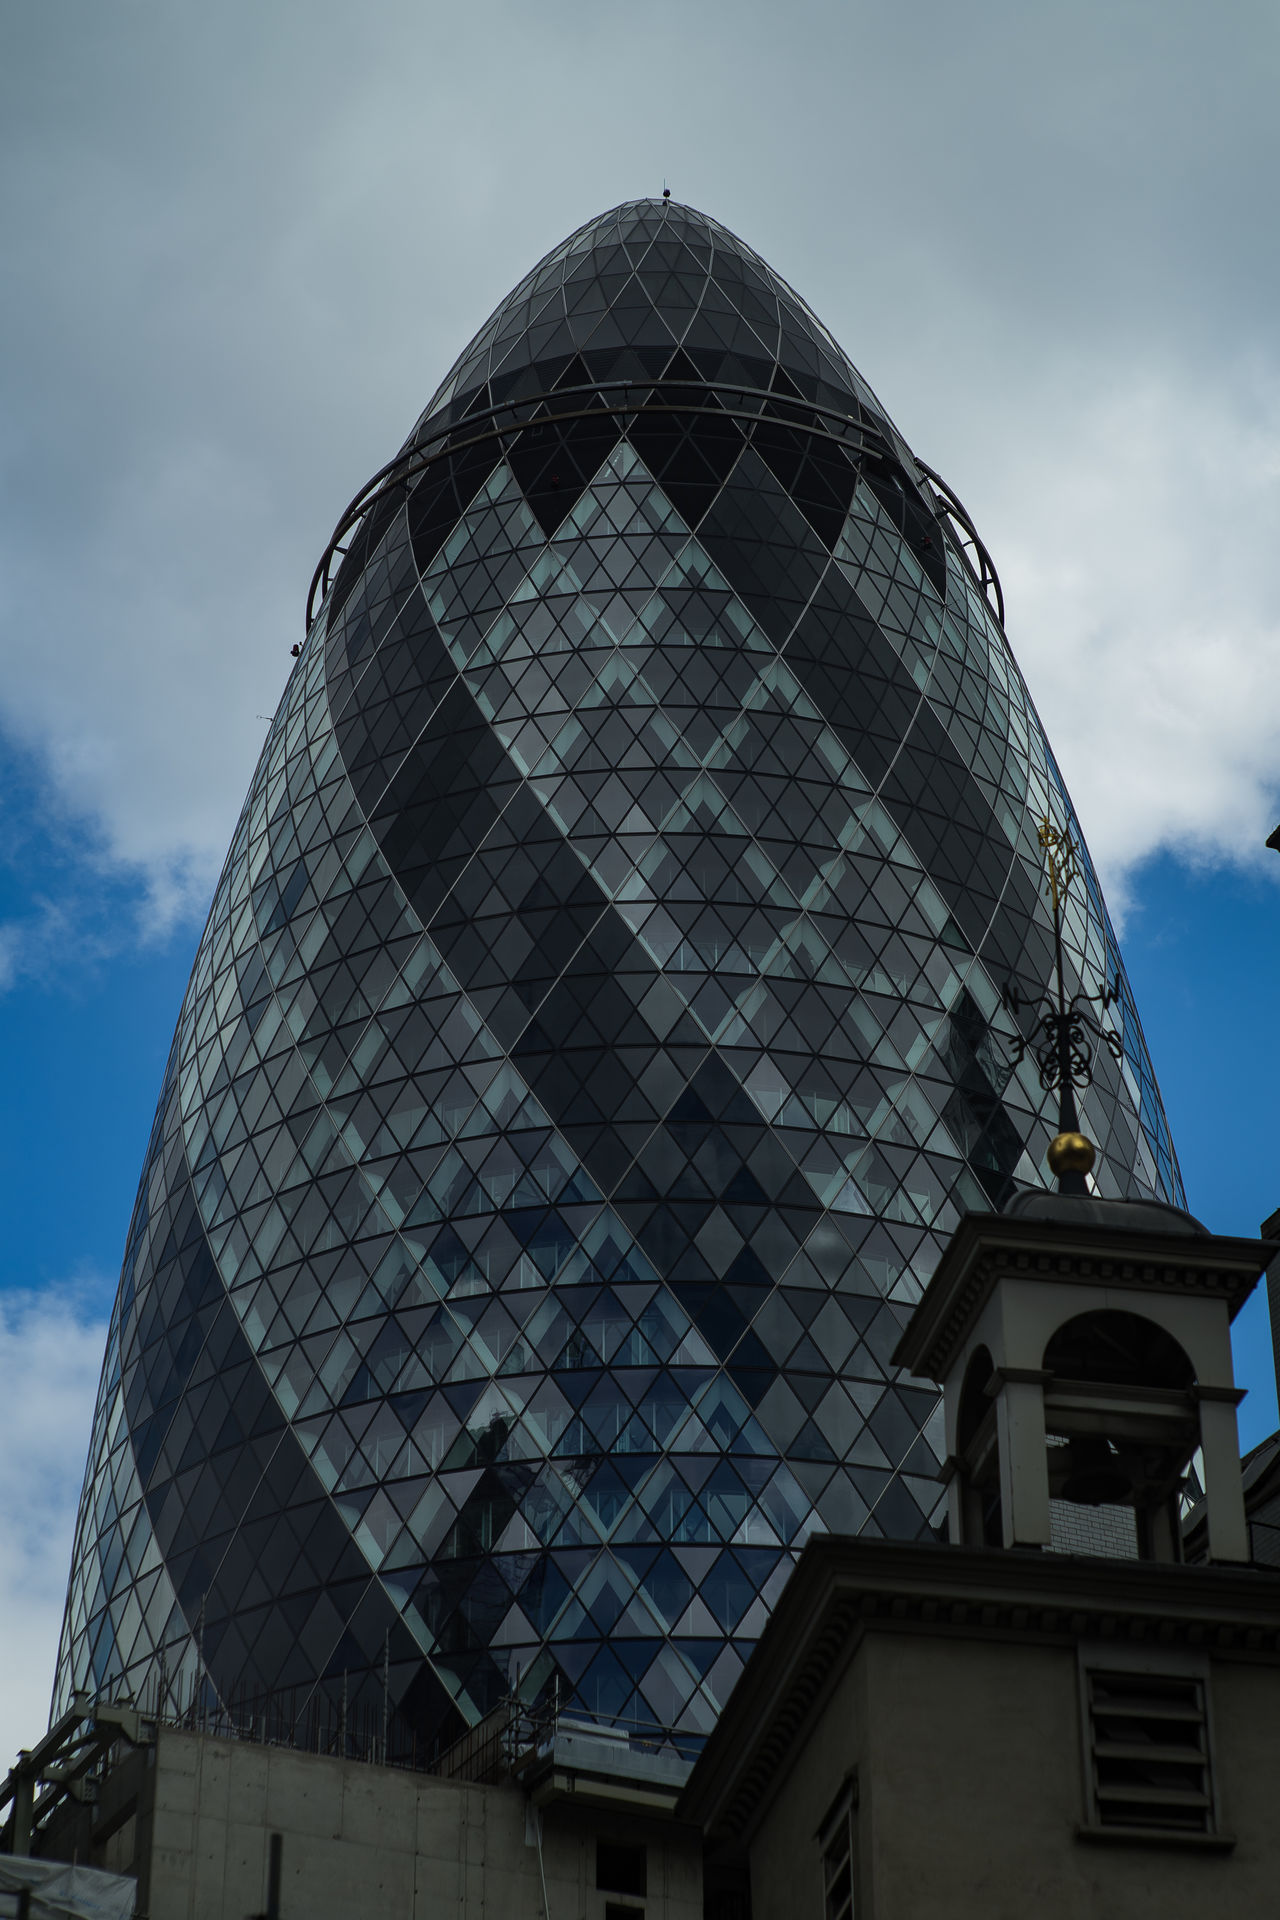 Architecture Building Exterior Built Structure Cloud - Sky Day Gherkin Gherkin Tower London LONDON❤ Low Angle View Neighborhood Map No People Outdoors Sky The Architect - 2017 EyeEm Awards The Street Photographer - 2017 EyeEm Awards Window